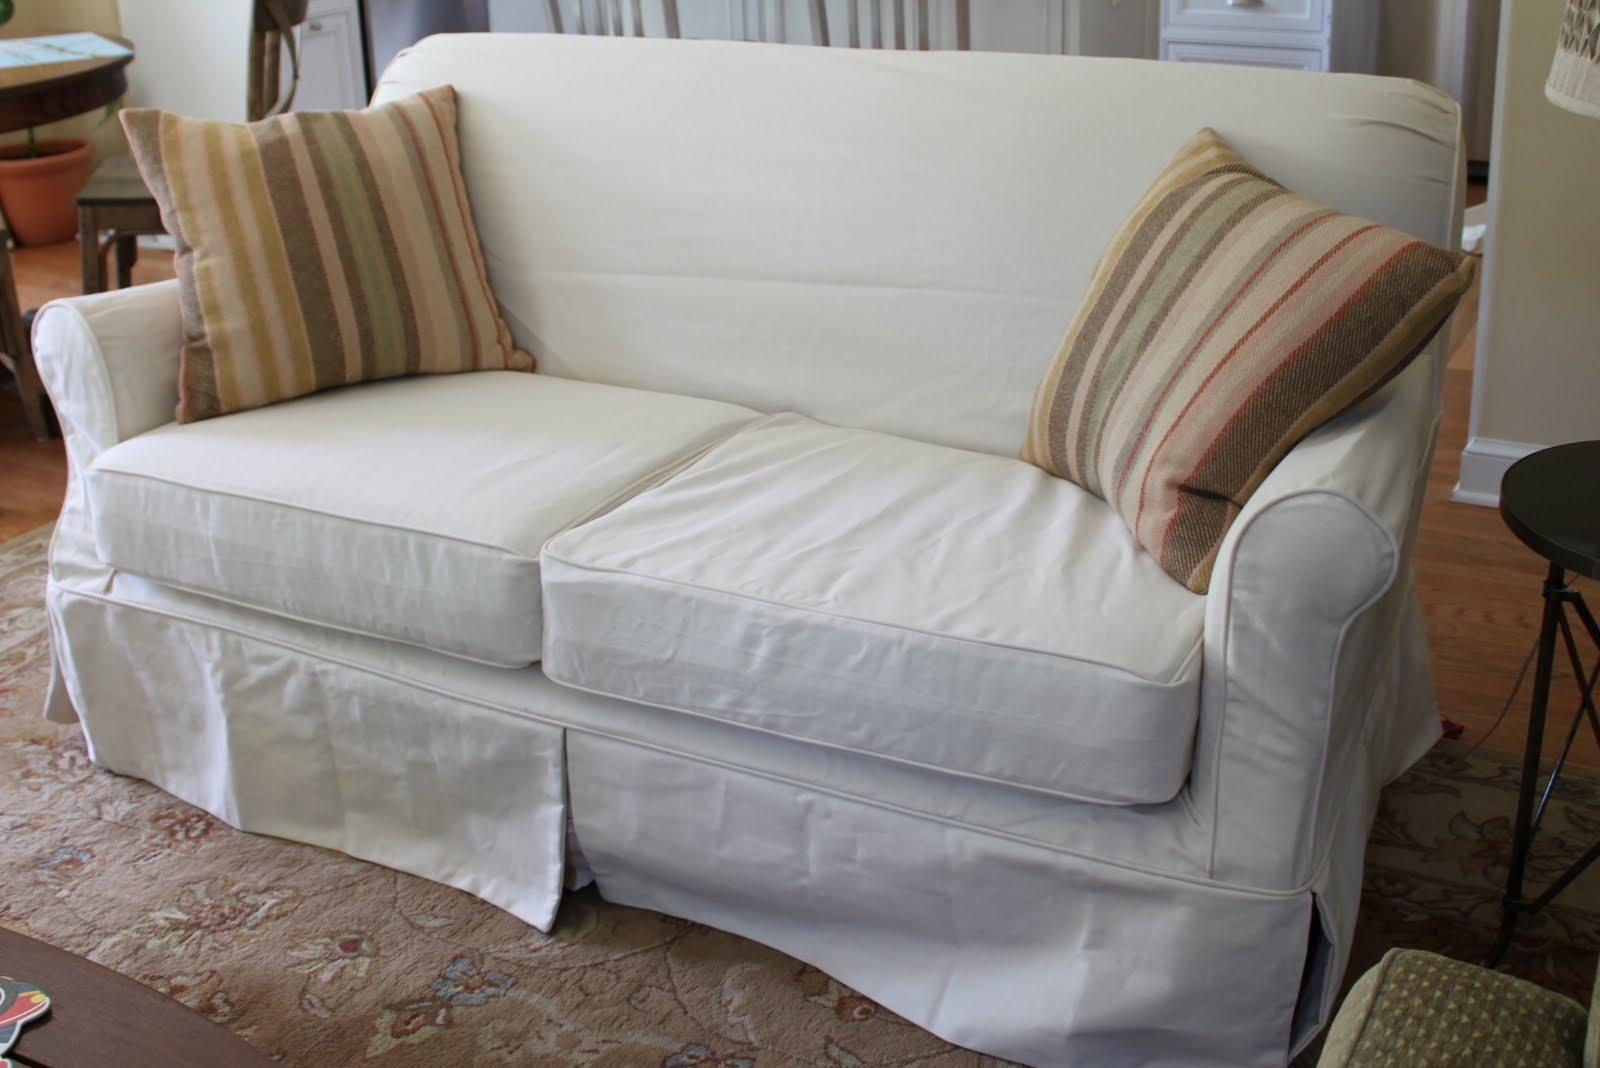 living room chair covers at target best office for back support 20+ choices of sleeper sofa slipcovers | ideas